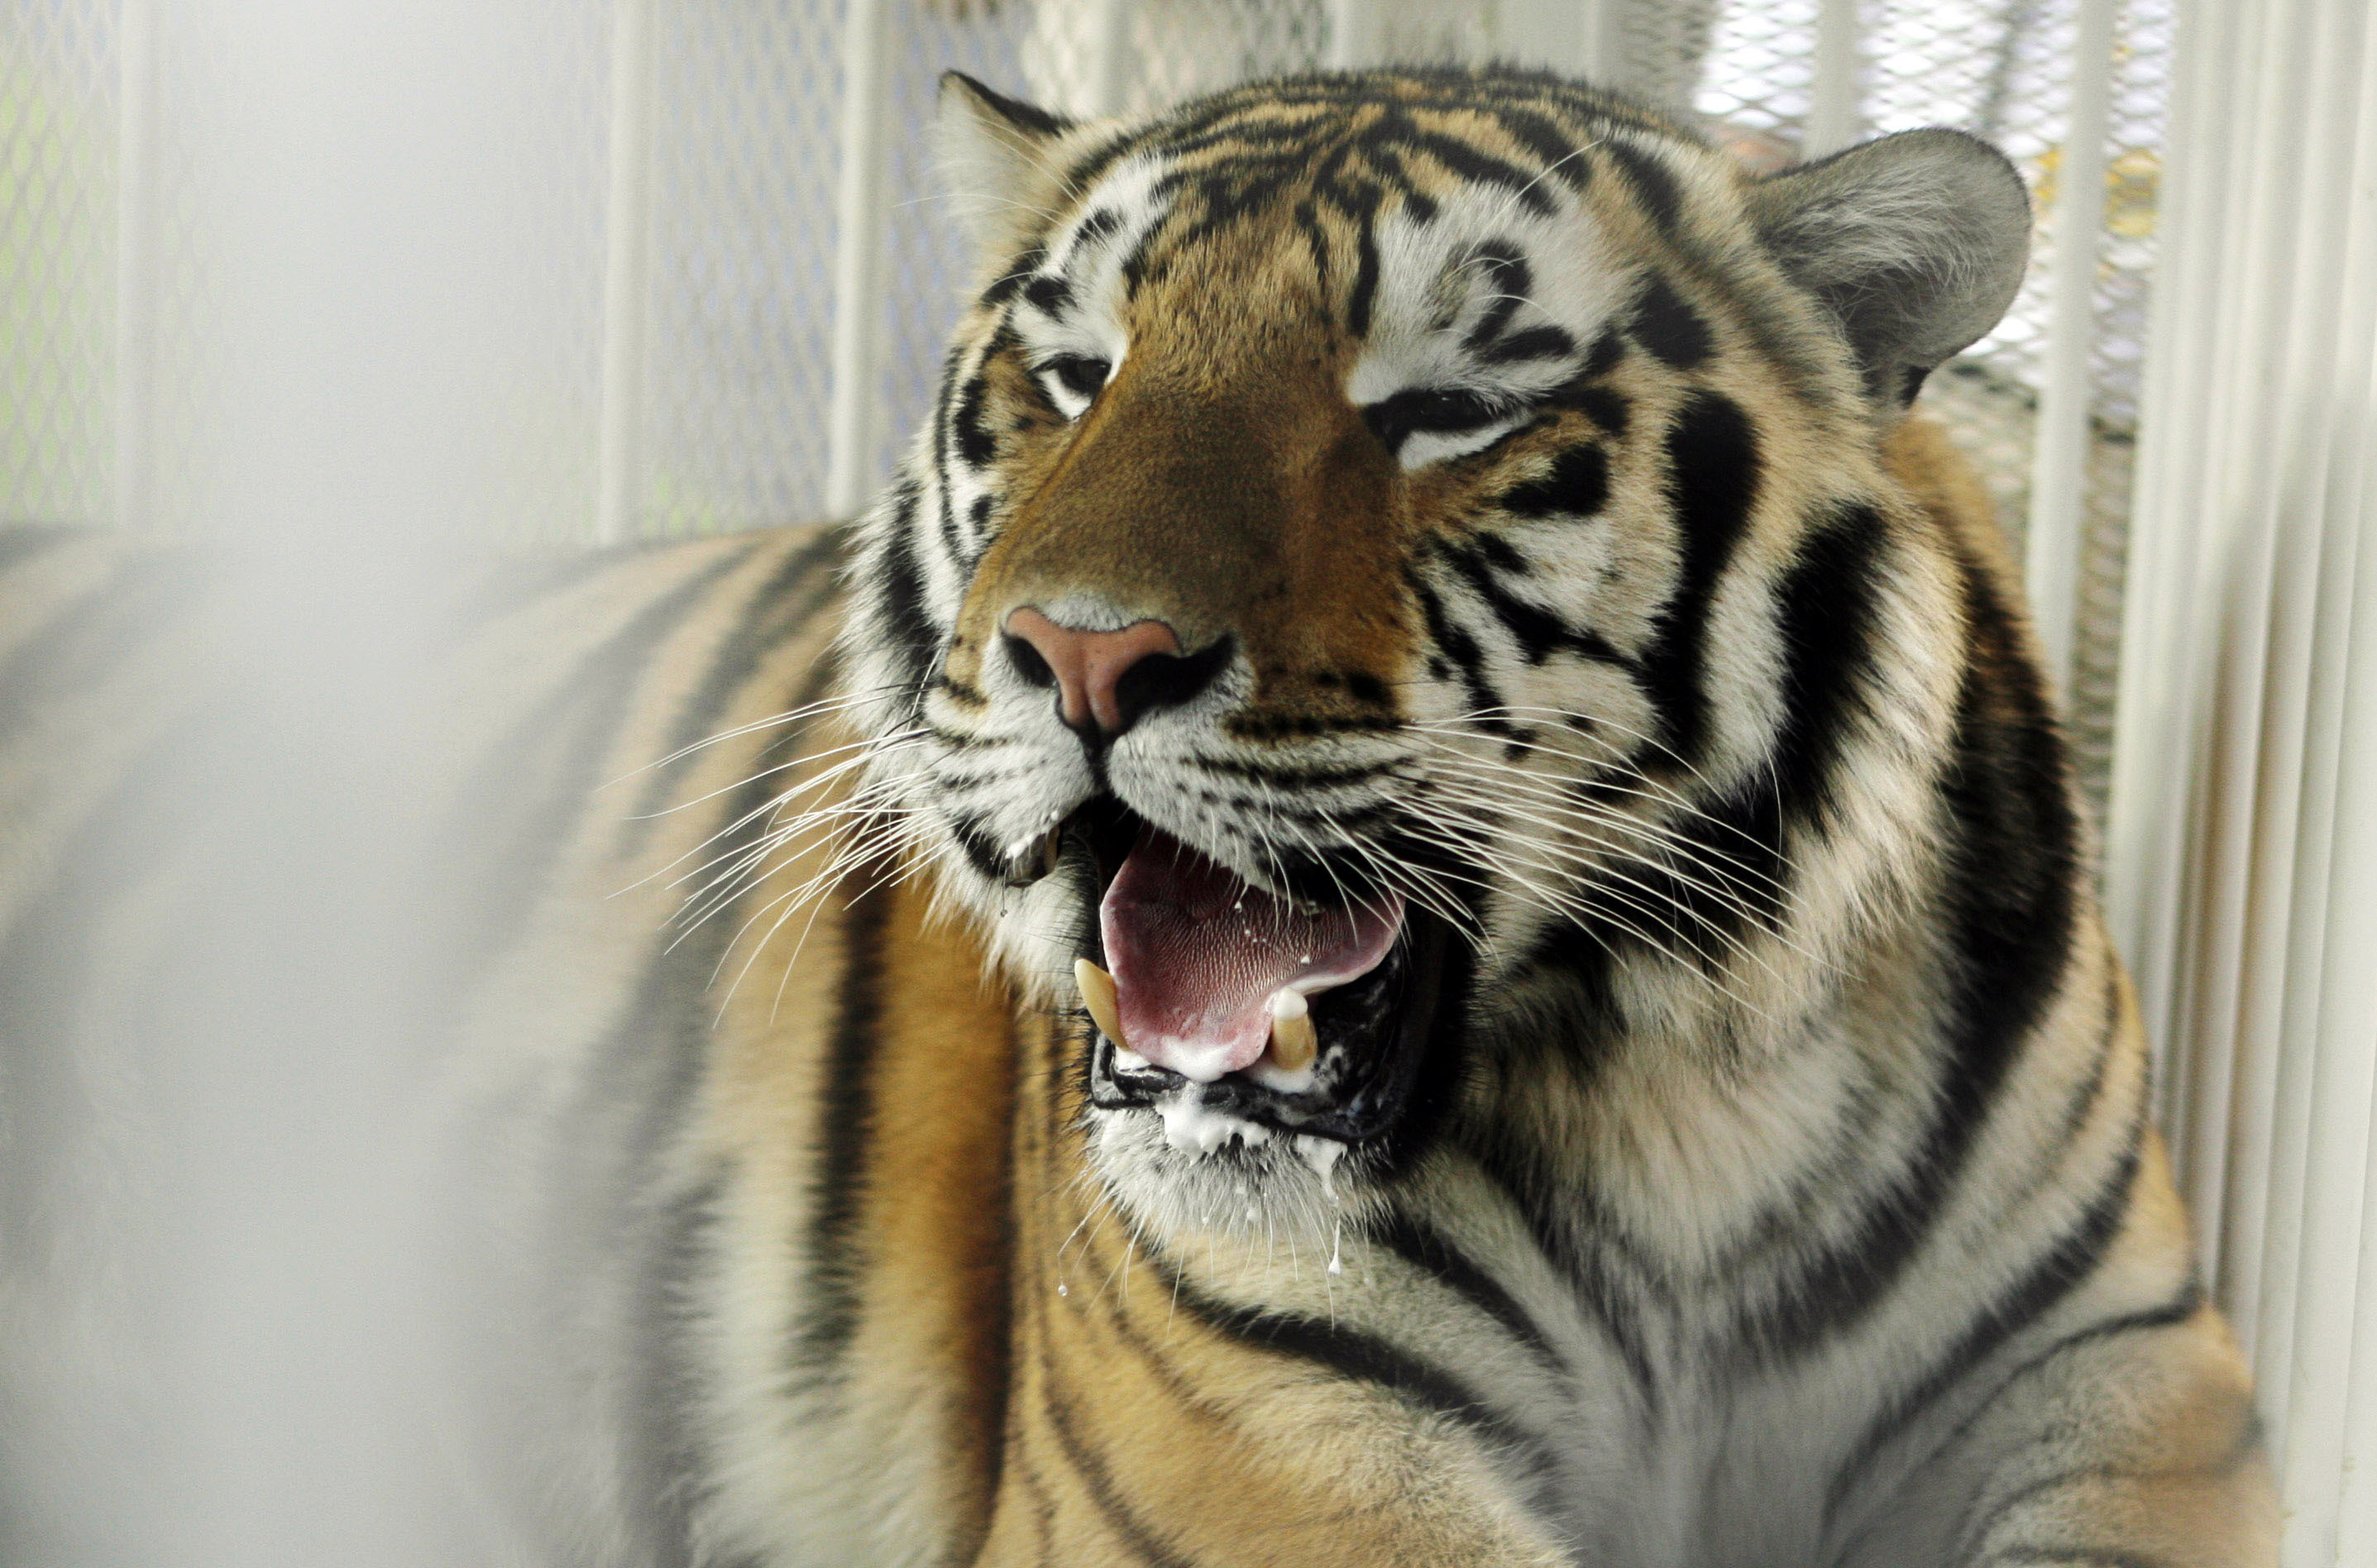 FILE - In this Oct. 6, 2007, file photo, LSU mascot Mike VI, a part Bengal and Siberian tiger, sits in his cage on the field for his first time before an NCAA college football game between LSU and Florida in Baton Rouge, La. Cancer found in the skull of L